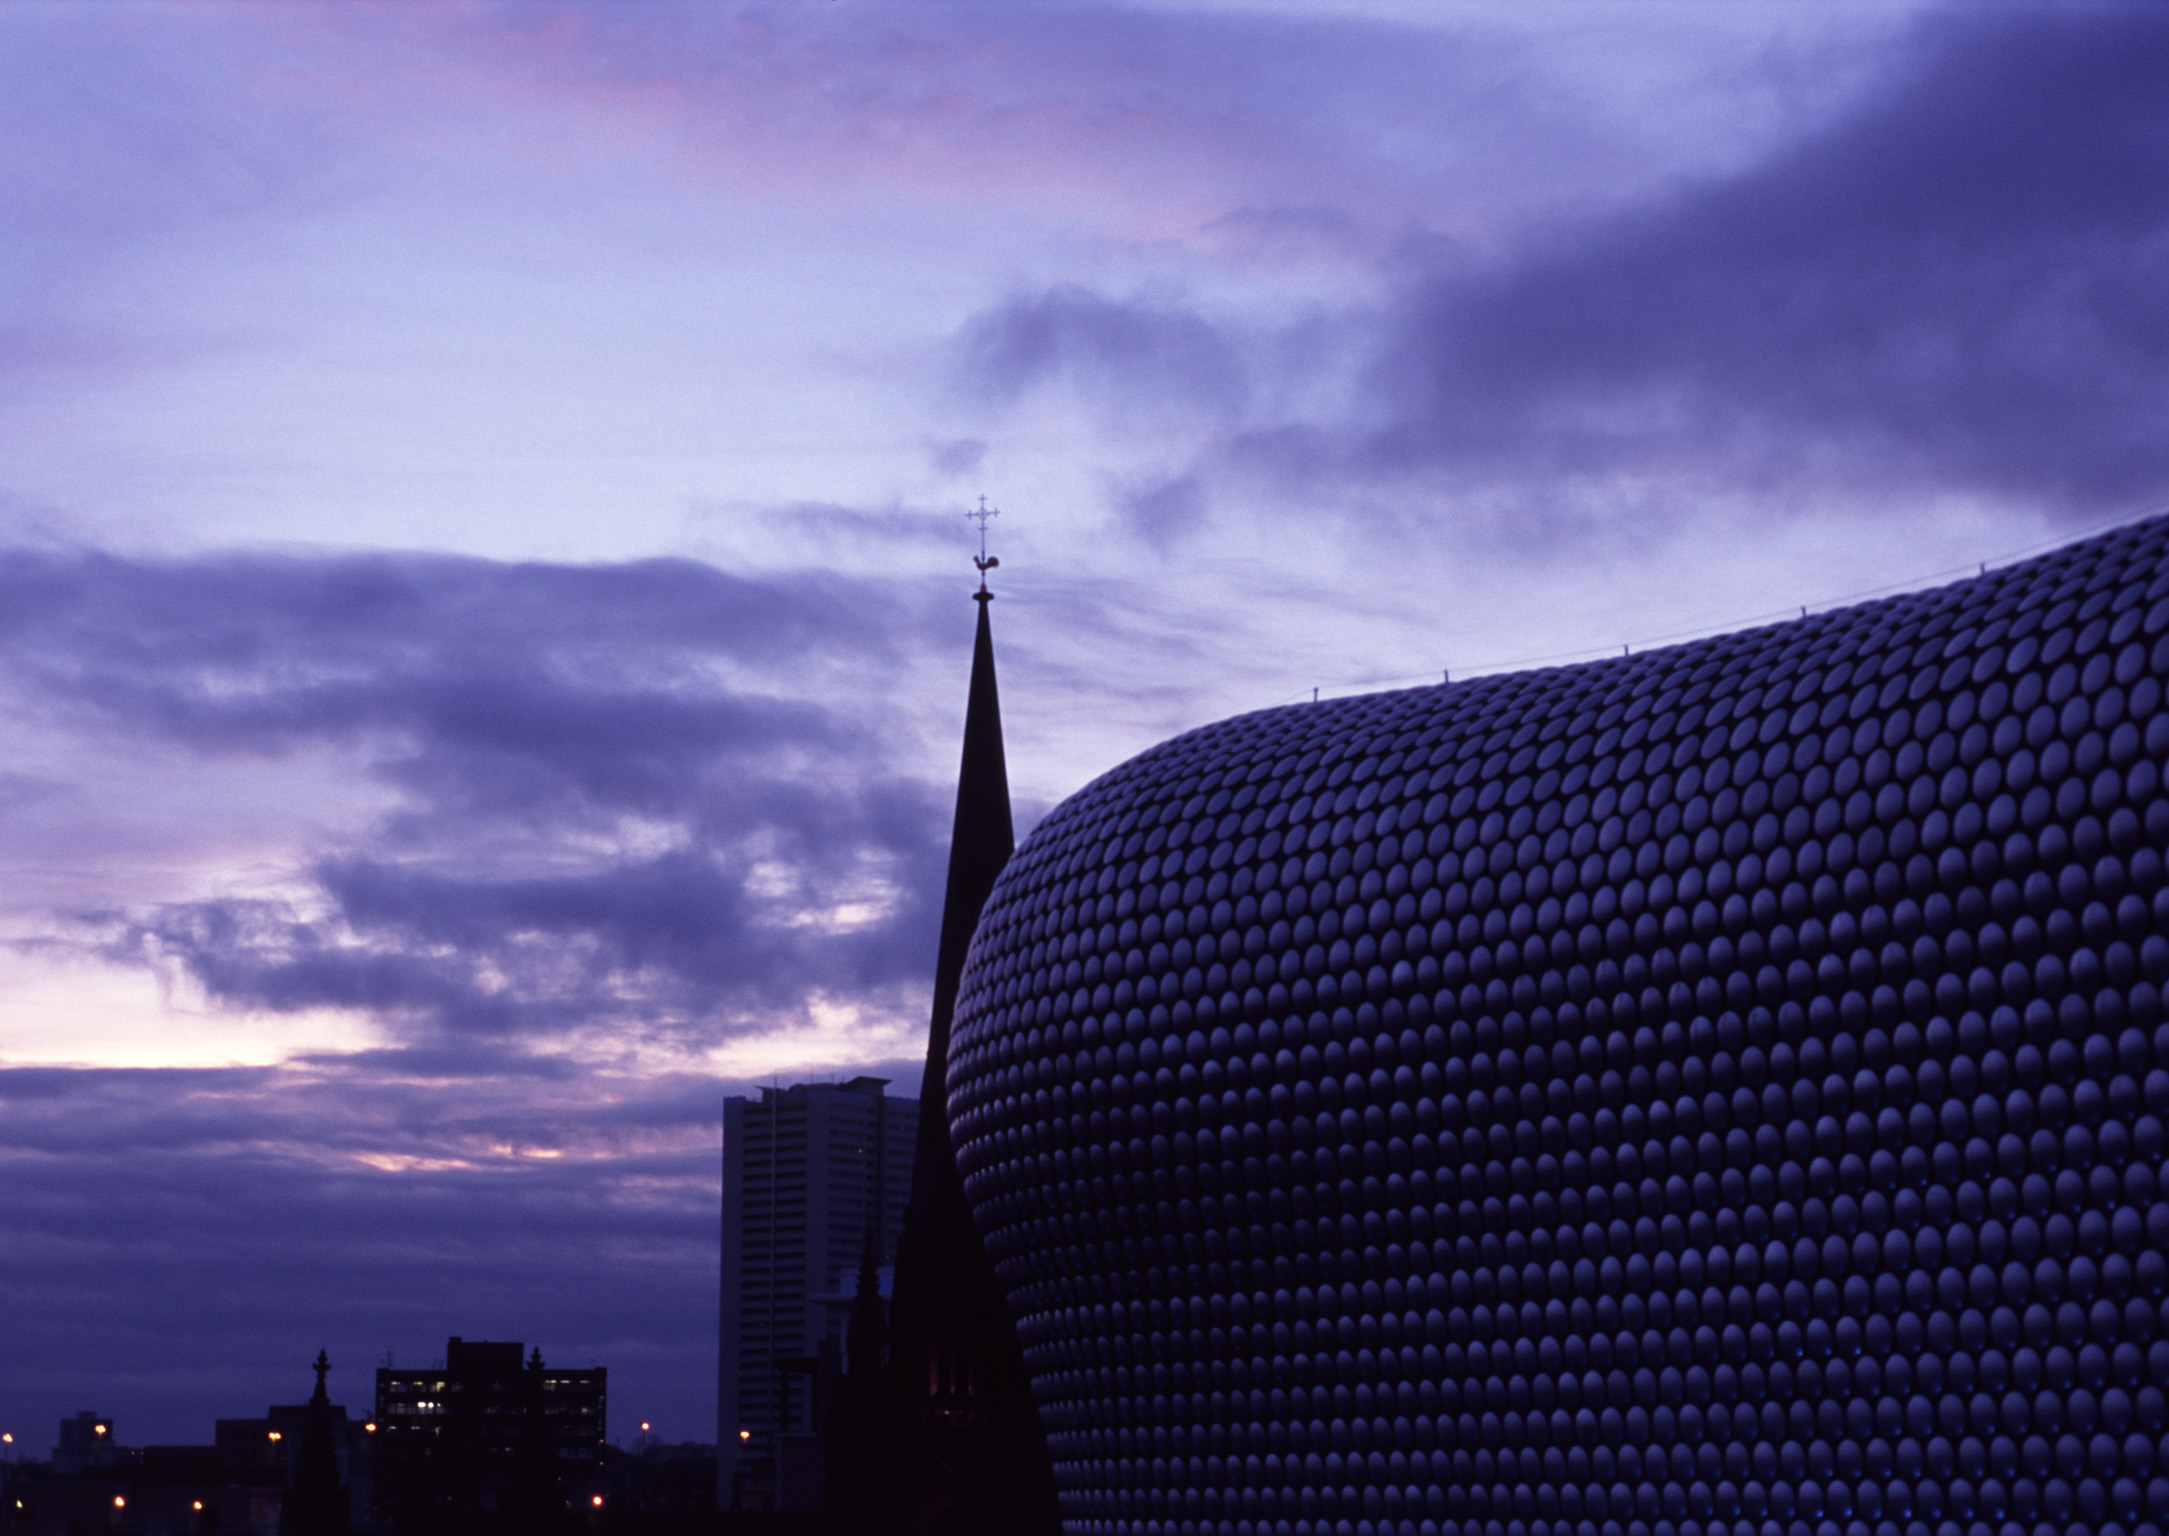 Famous Landmark in Birmingham, England - Bullring Shopping Centre, Emphasizing Selfridges Building. Captured at Night Time.